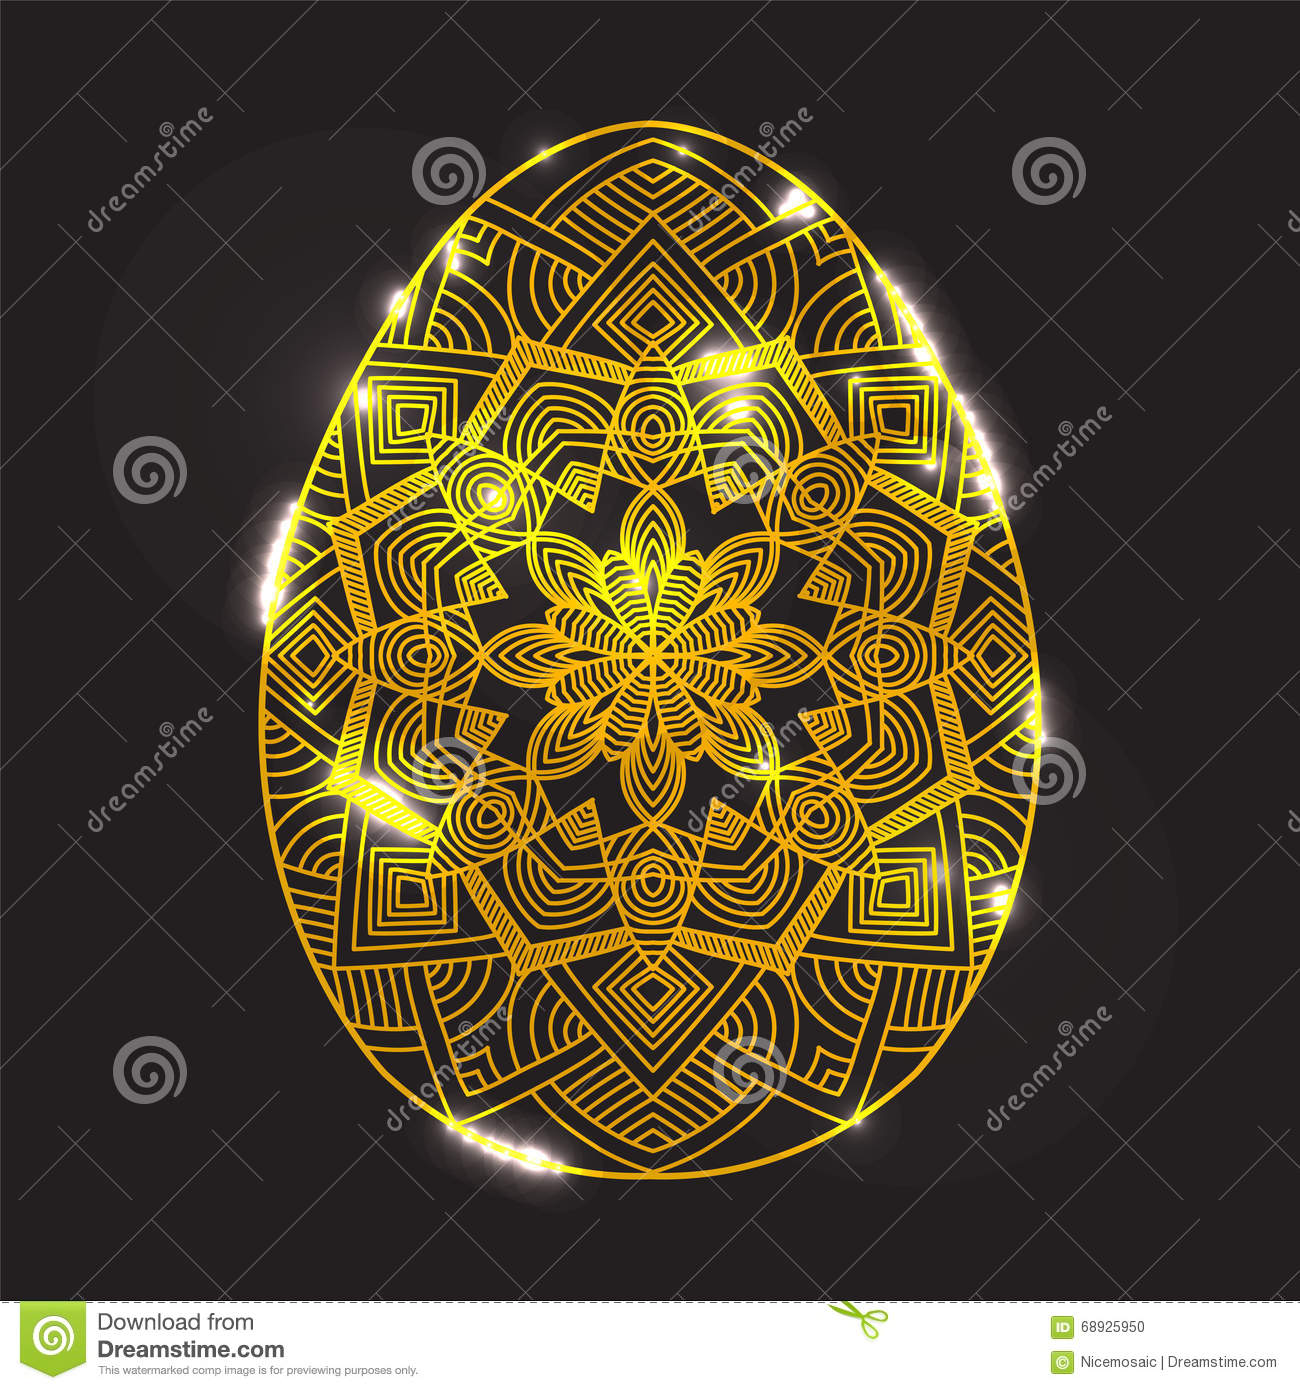 Golden Glowing Easter Egg With Mandala Pattern With